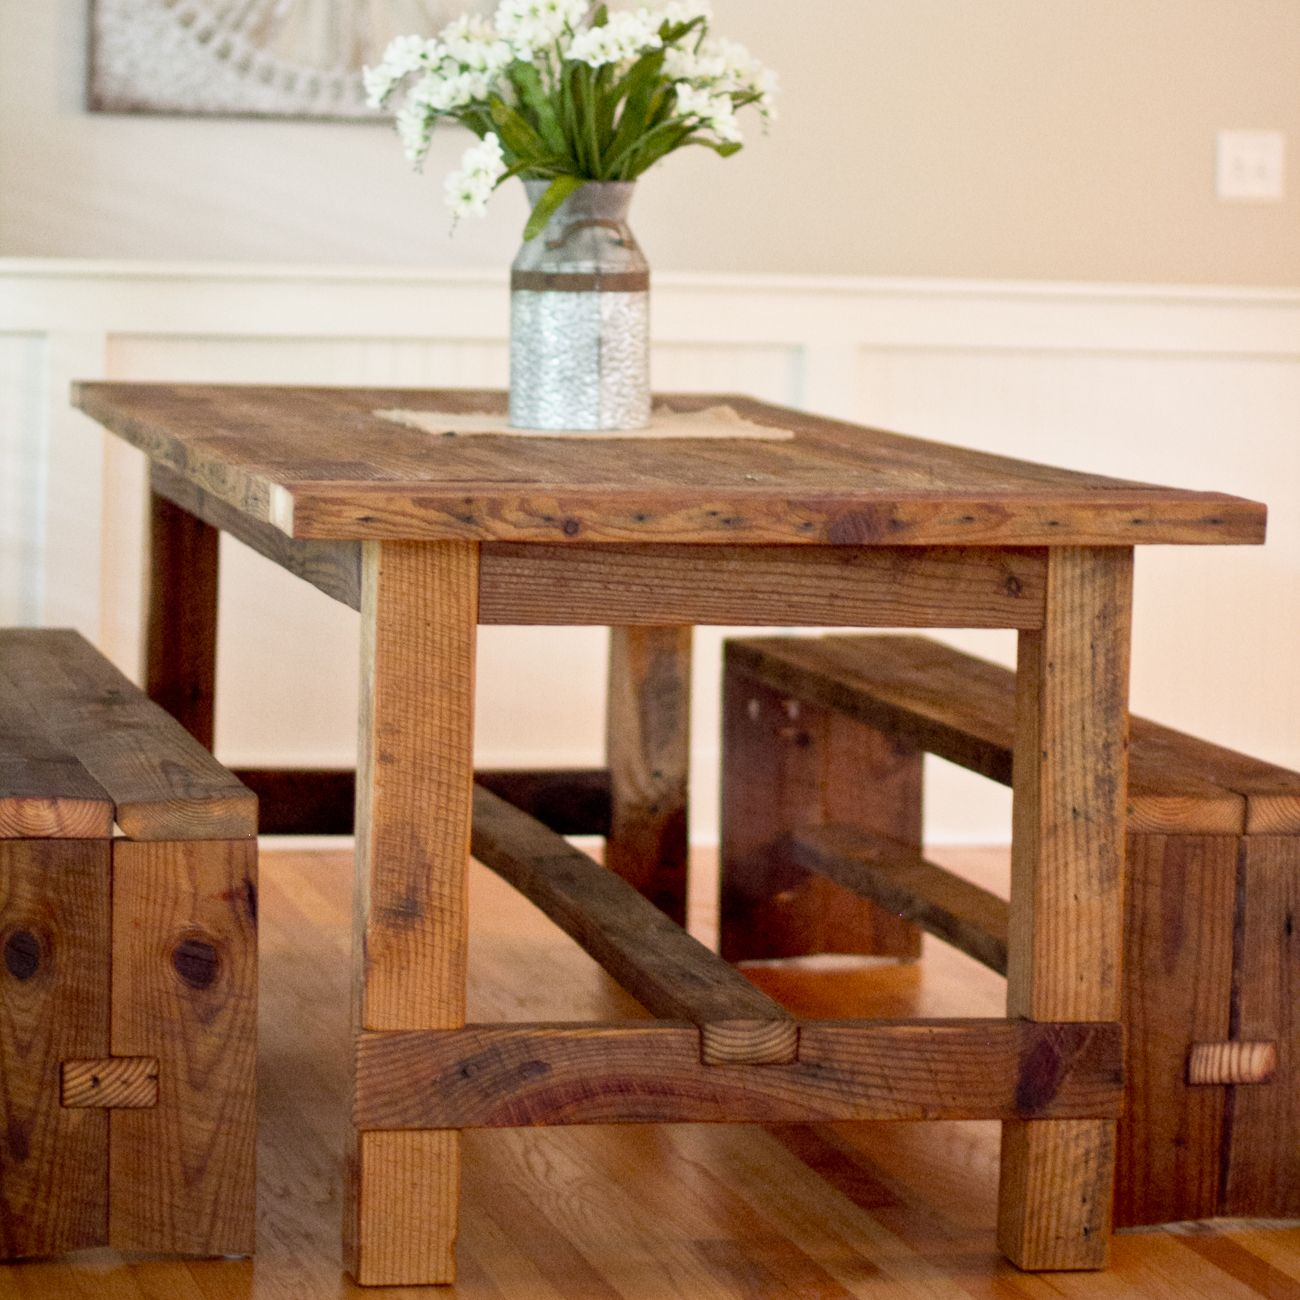 510ea7a2f8d5 reclaimed-wood-rustic-sons-of-sawdust-wood-working -Athens-Georgia-farm-table-vanity-1